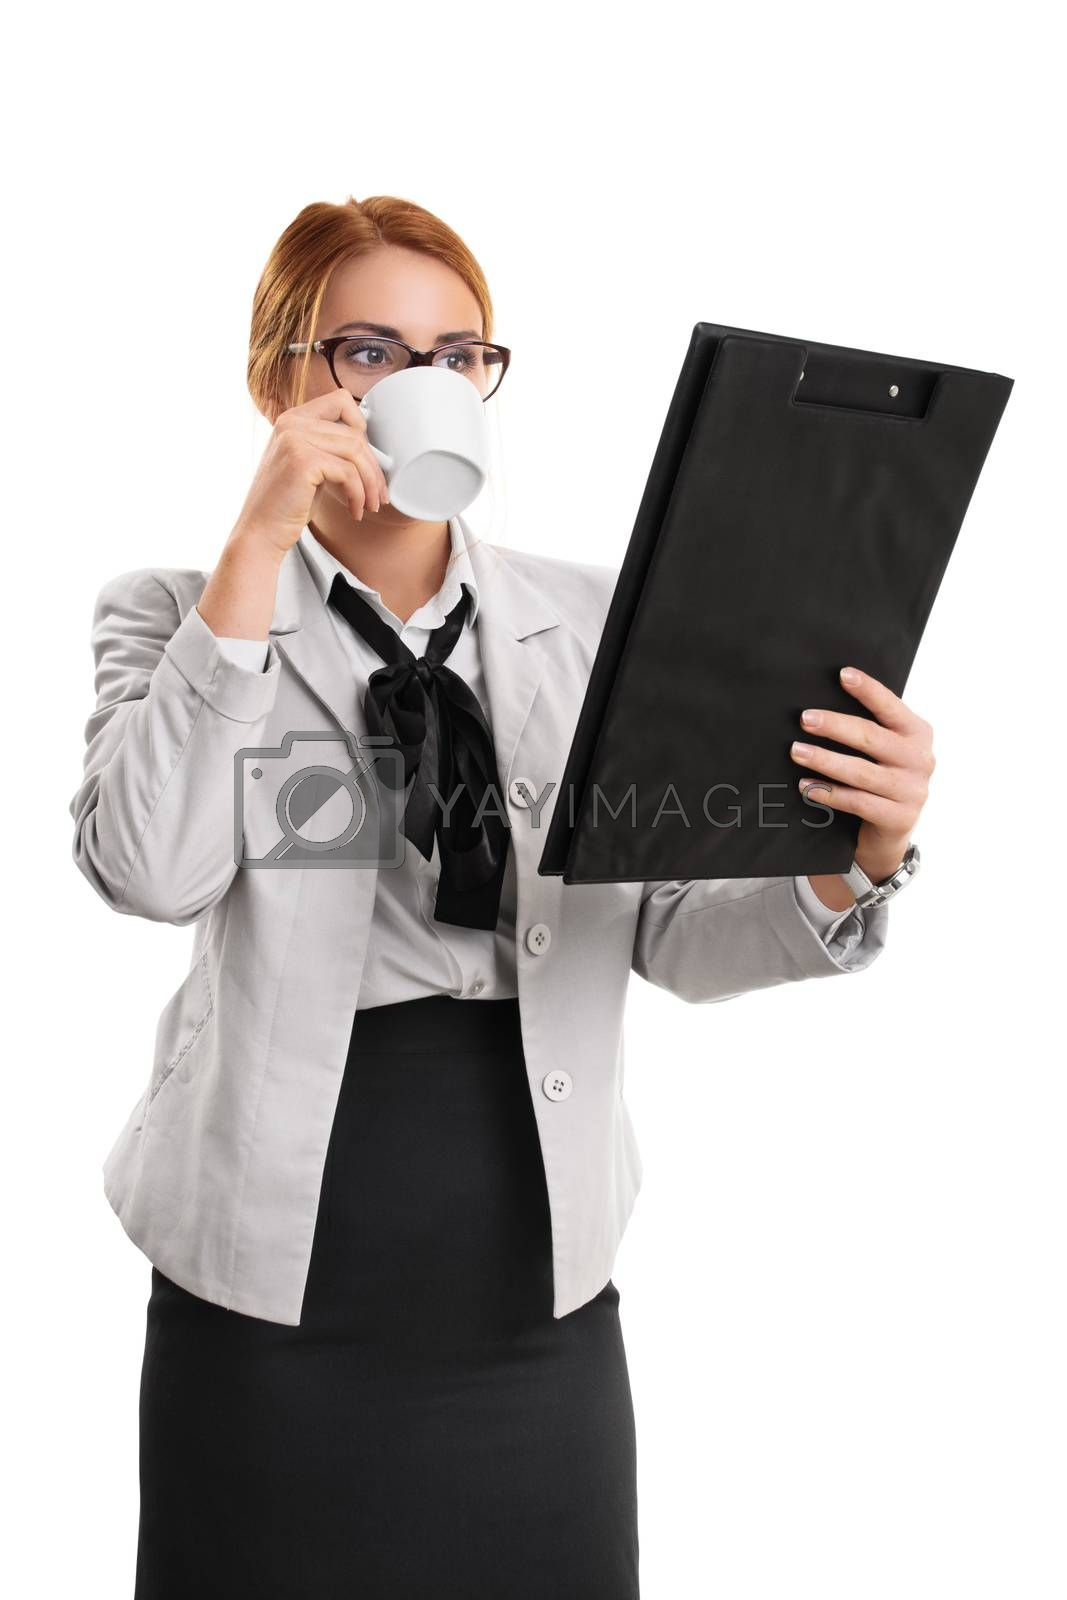 A portrait of a businesswoman drinking from a cup and looking at a clipboard, isolated on white background.